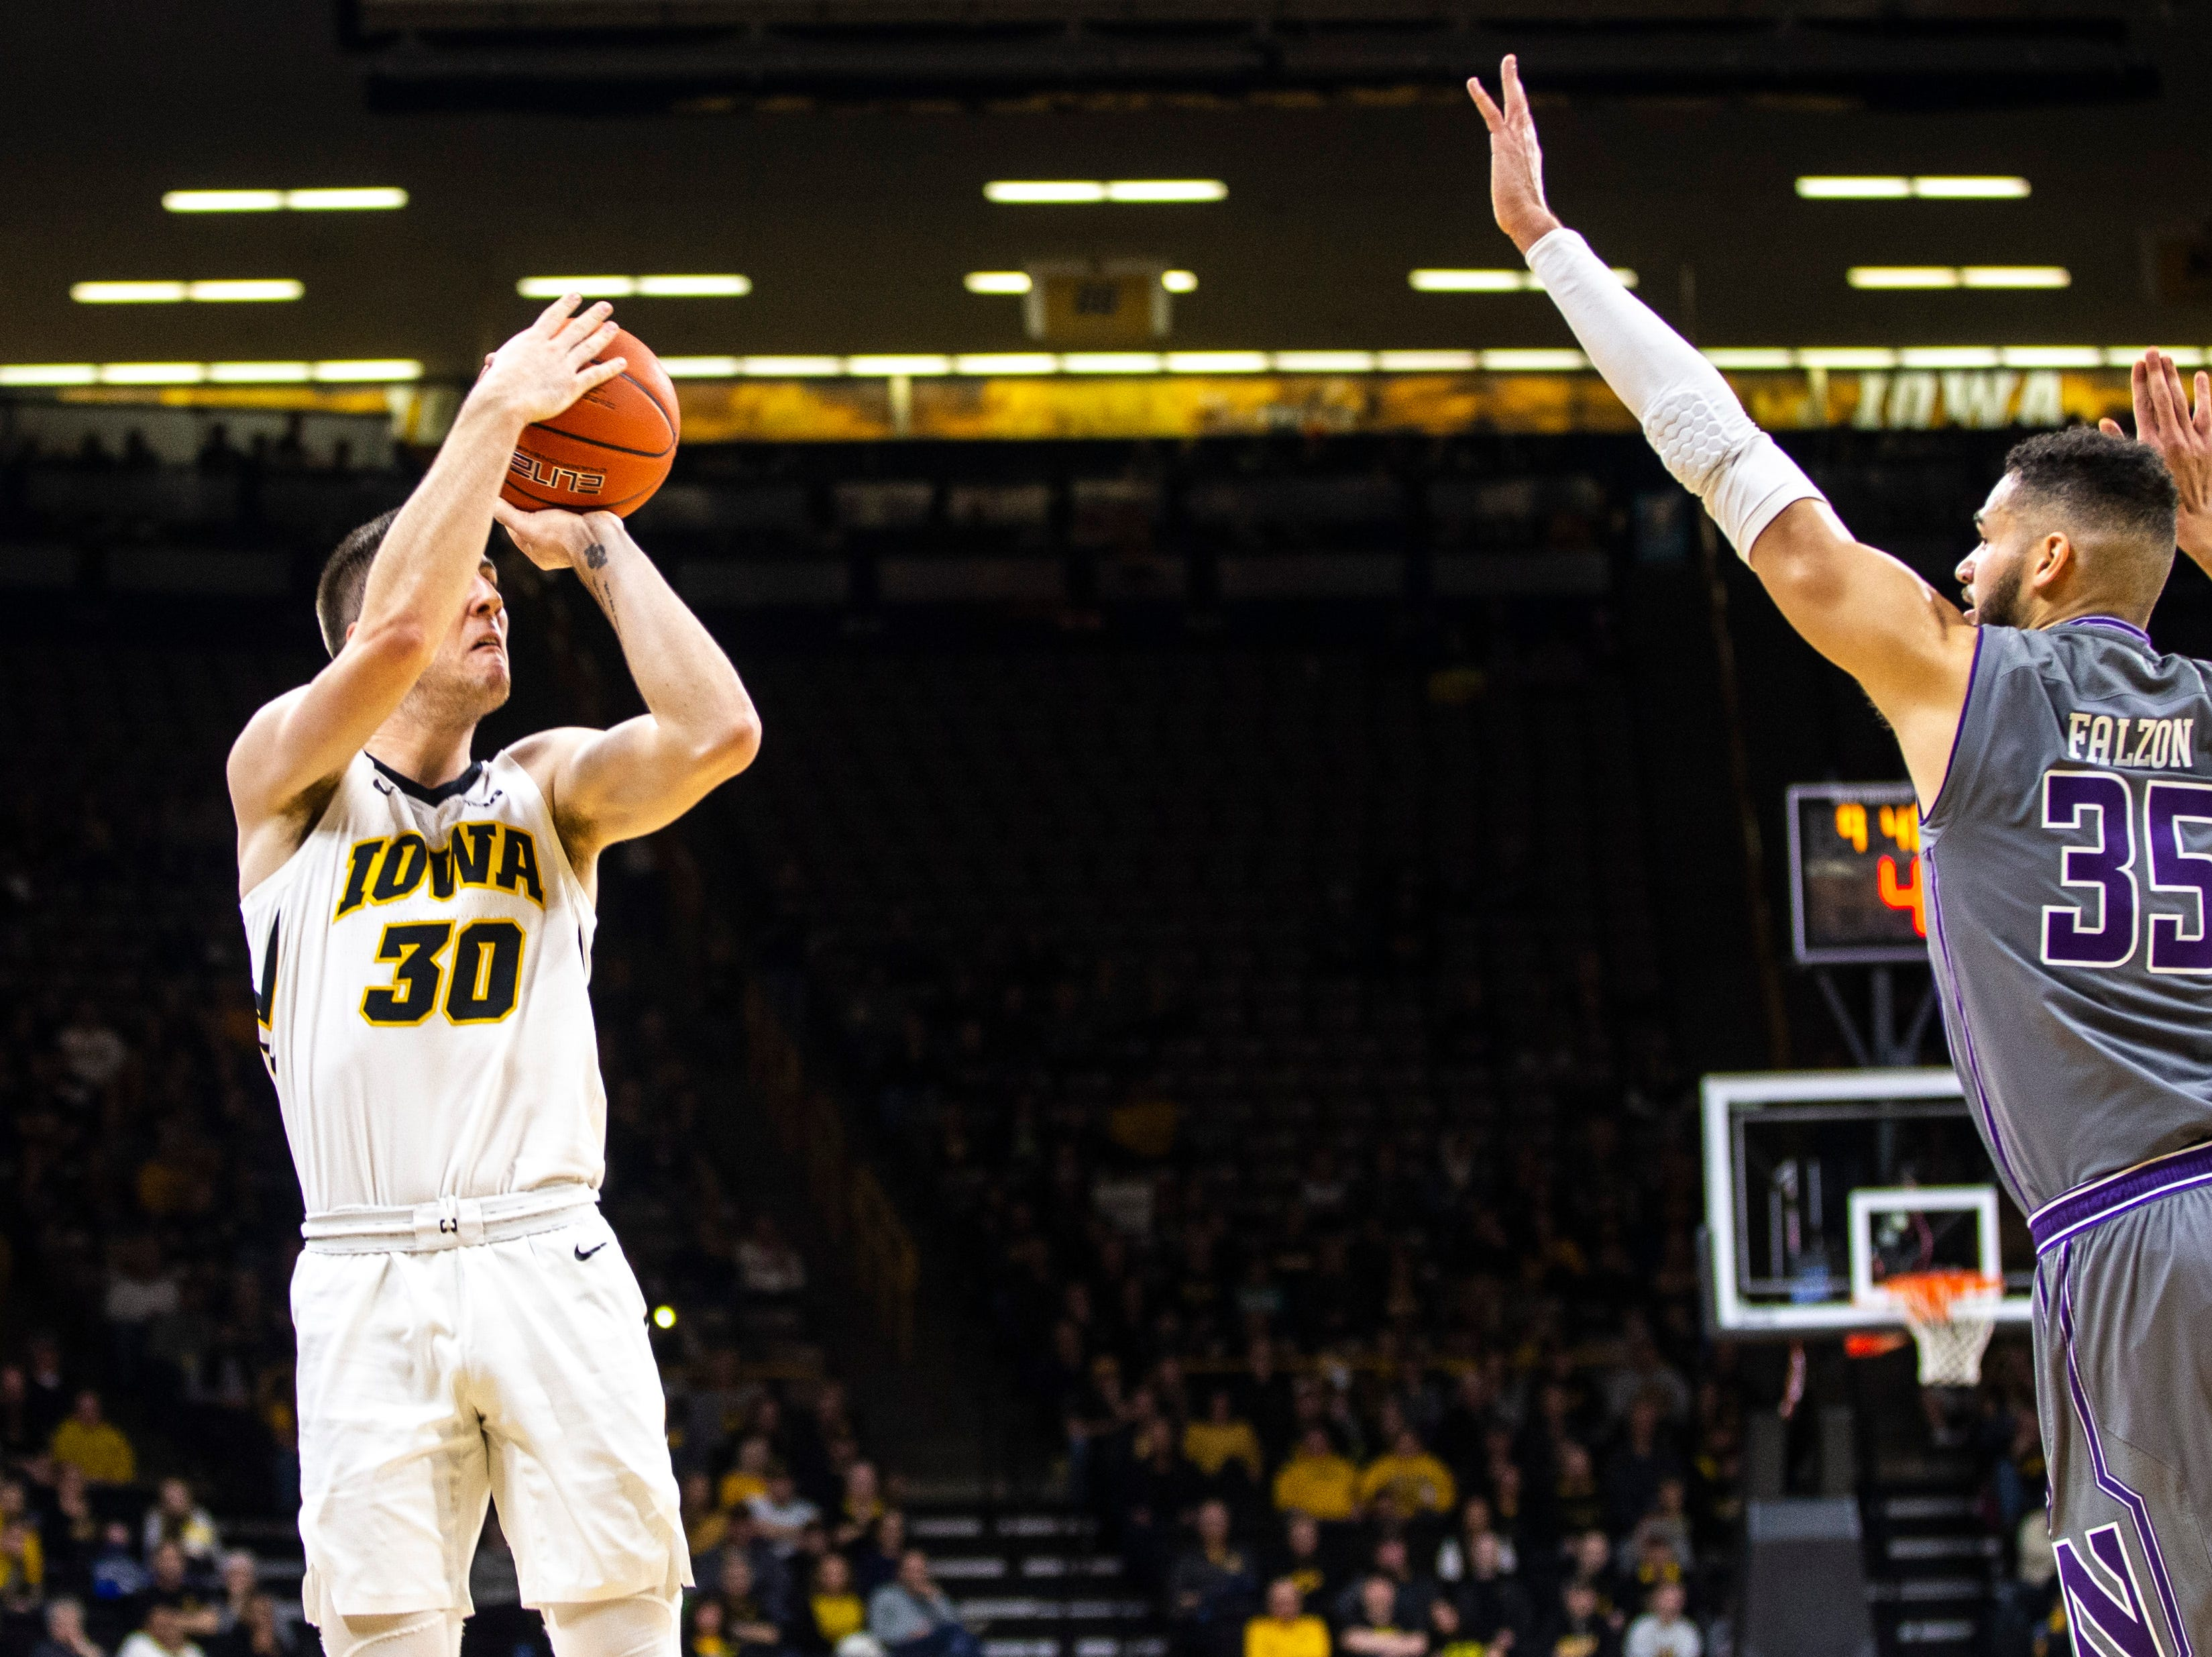 Iowa guard Connor McCaffery (30) shoots a 3-point basket while Northwestern forward Aaron Falzon defends during a NCAA Big Ten Conference men's basketball game on Sunday, Feb. 10, 2019 at Carver-Hawkeye Arena in Iowa City, Iowa.